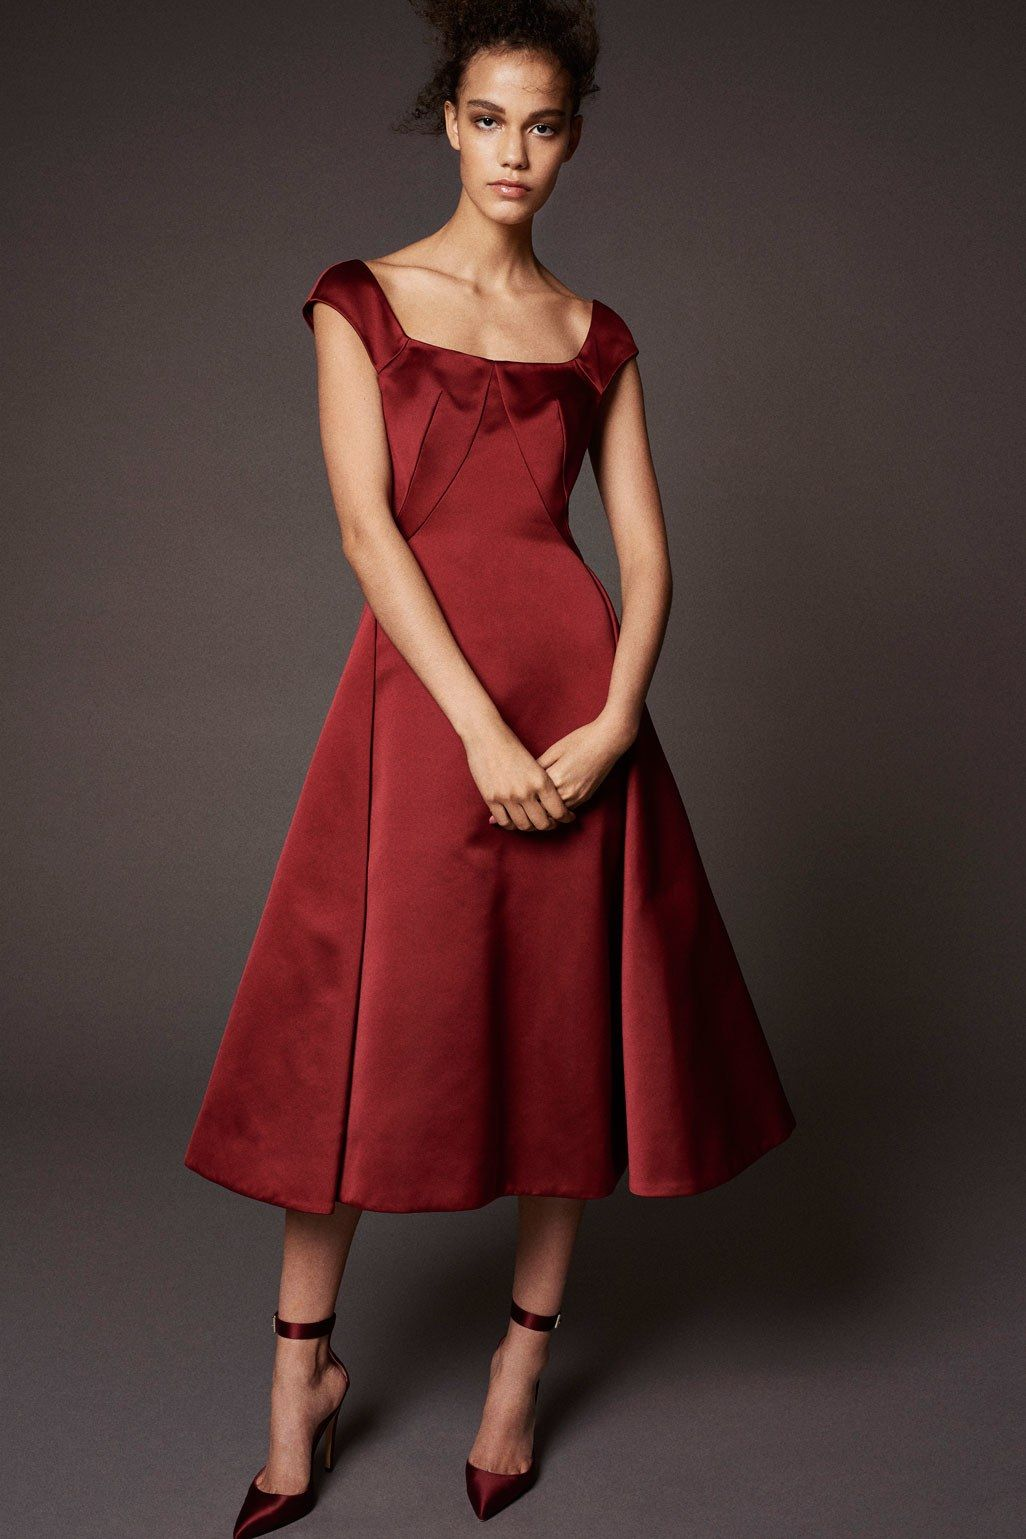 883c990b469 The complete Zac Posen Pre-Fall 2018 fashion show now on Vogue Runway.